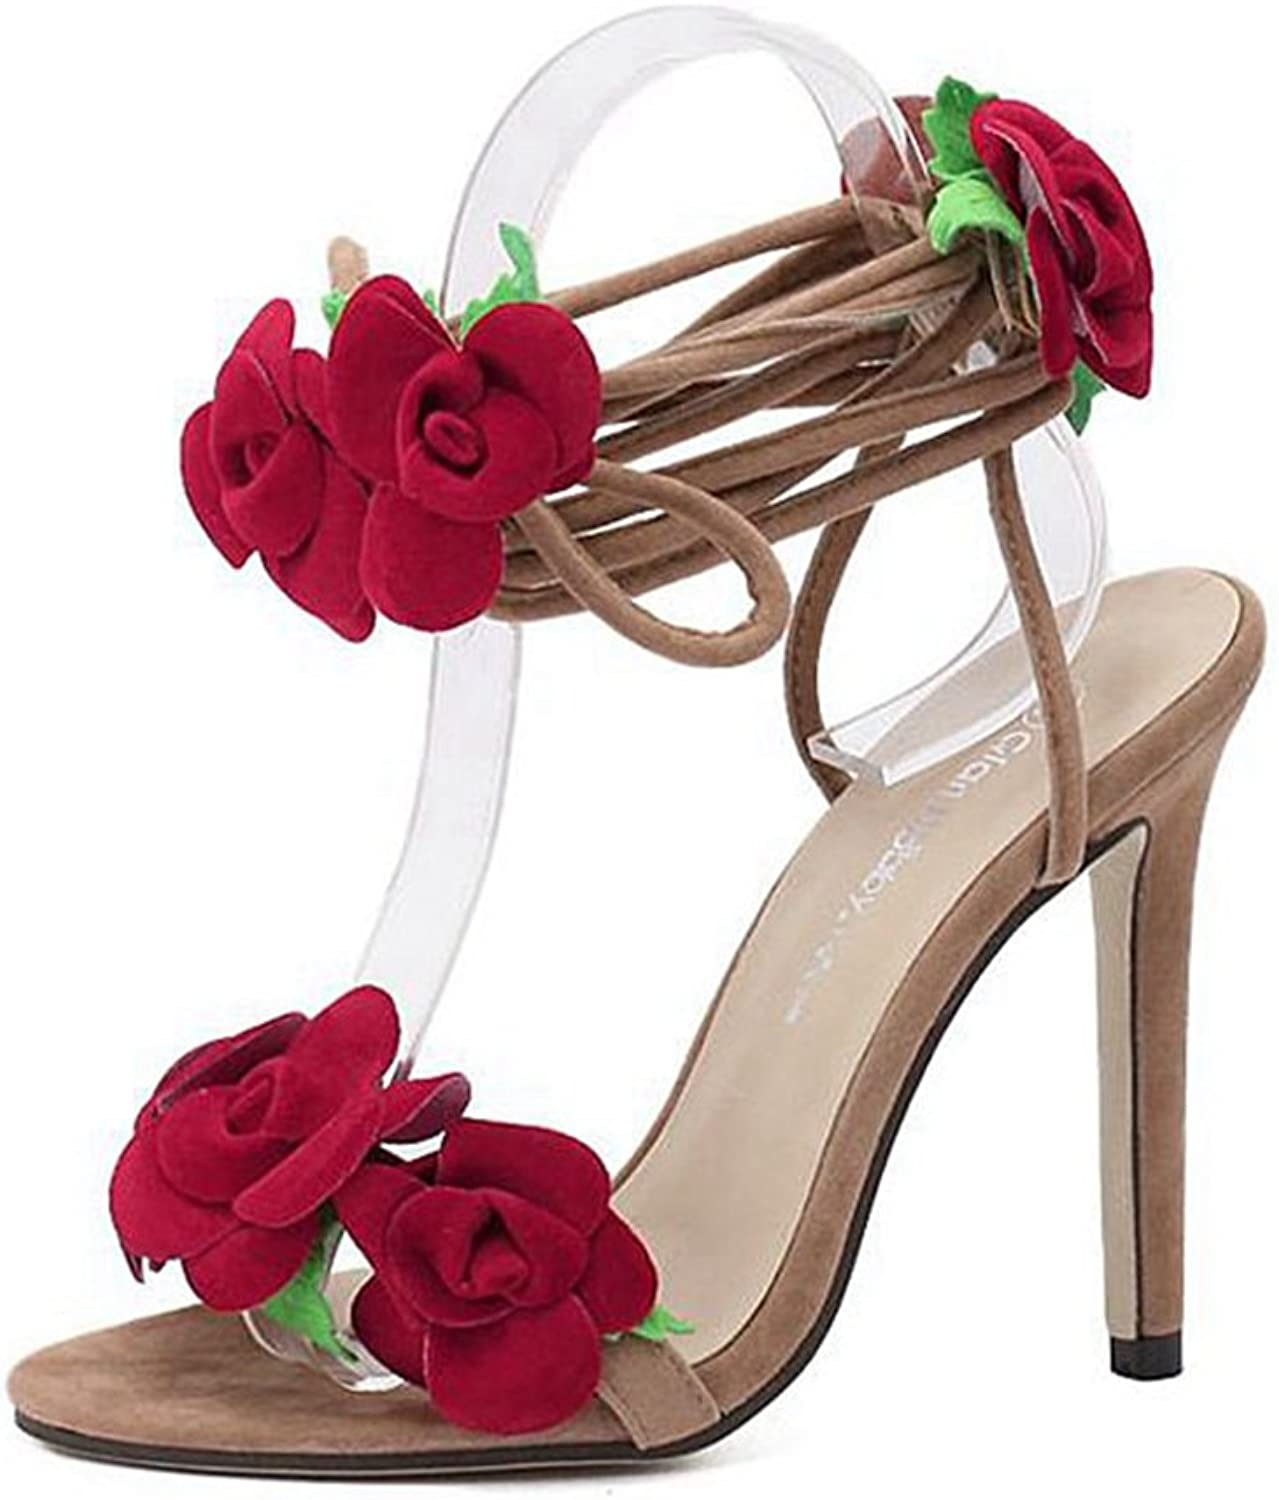 GIY Women's Stiletto Heel Sandal Cross Flower Hollow Out Peep Toe Lace up High Thin Heels Pumps shoes